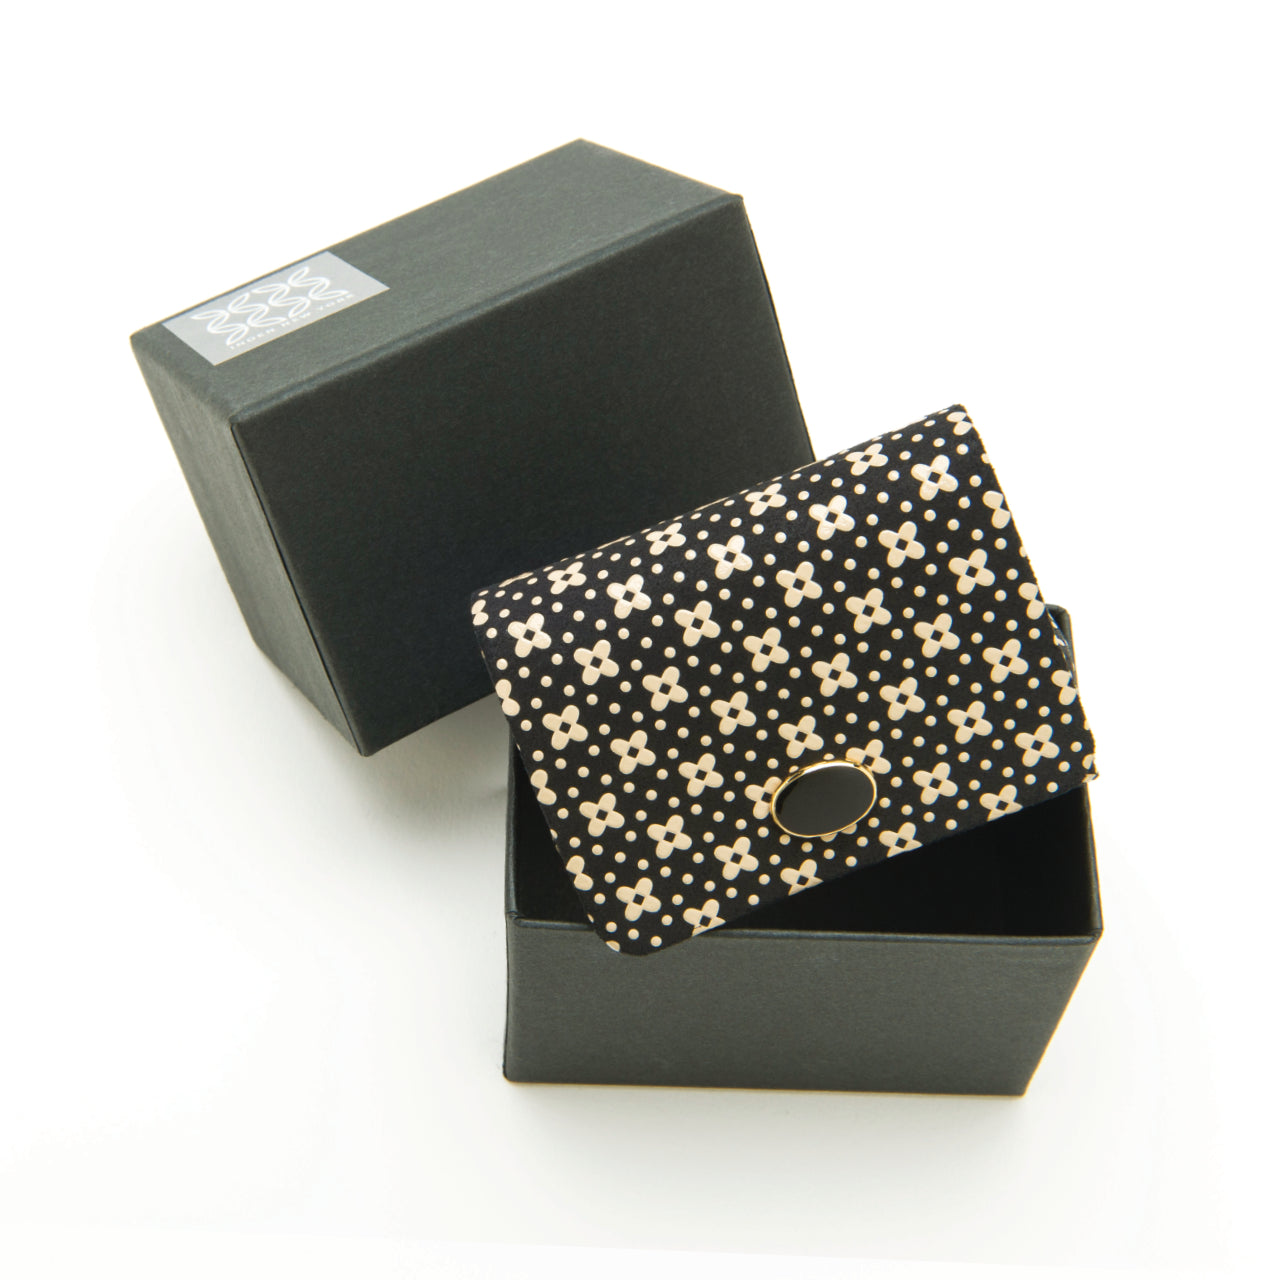 INDEN RING CASE R x R Flower Lattice